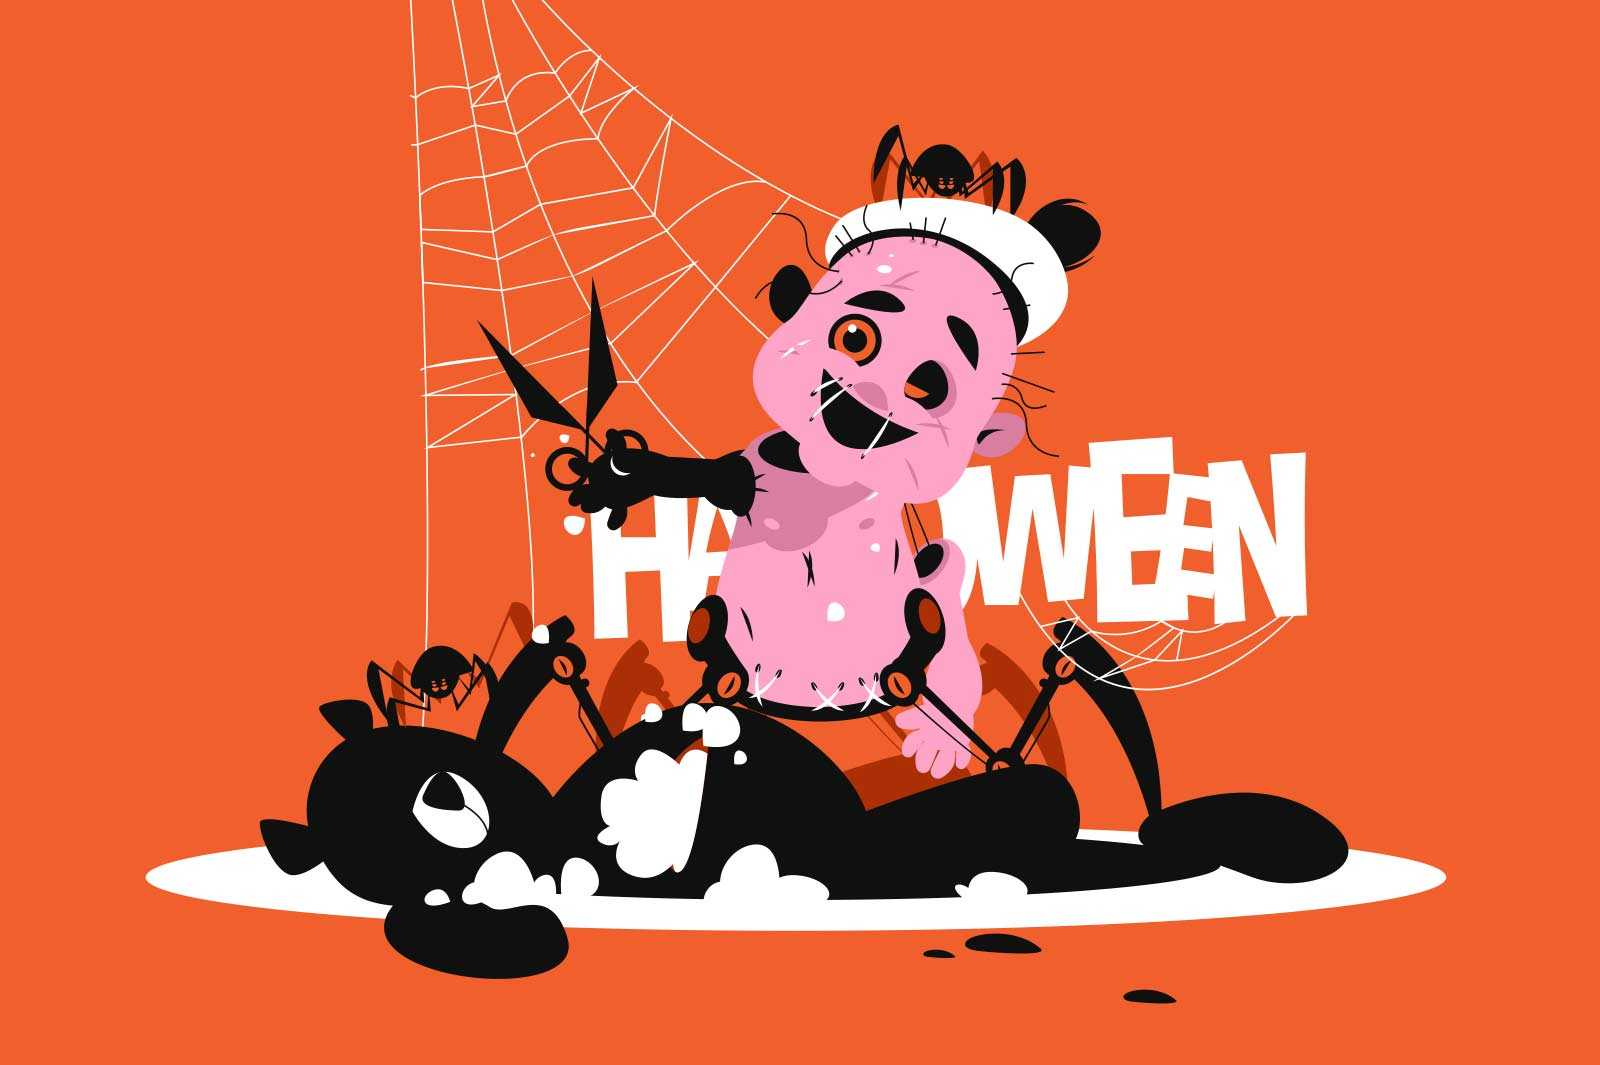 Terrible evil doll vector illustration. Halloween doll with scissors and spider with spiderweb flat style. Autumn holiday and trick or treat concept. Isolated on orange background